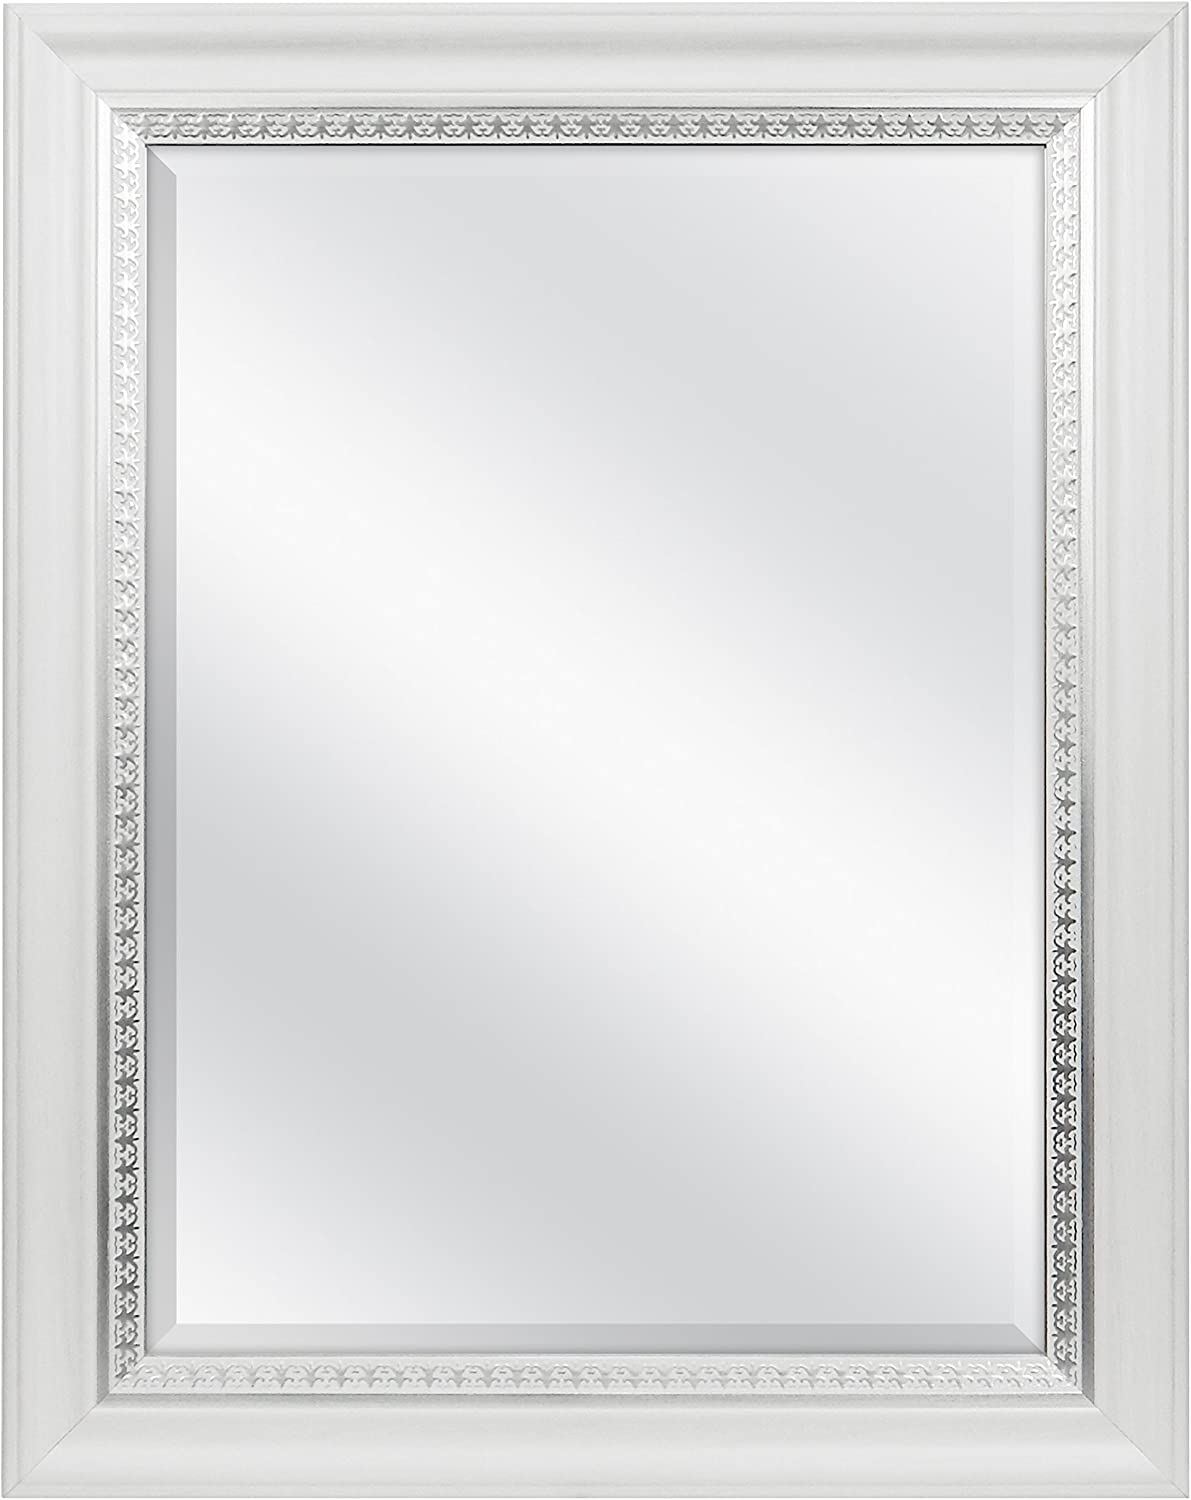 MCS 18x24 Inch Embossed Accent Wall Mirror, 23x29 Inch Overall Size, White Wood Grain with Silver Trim Finish